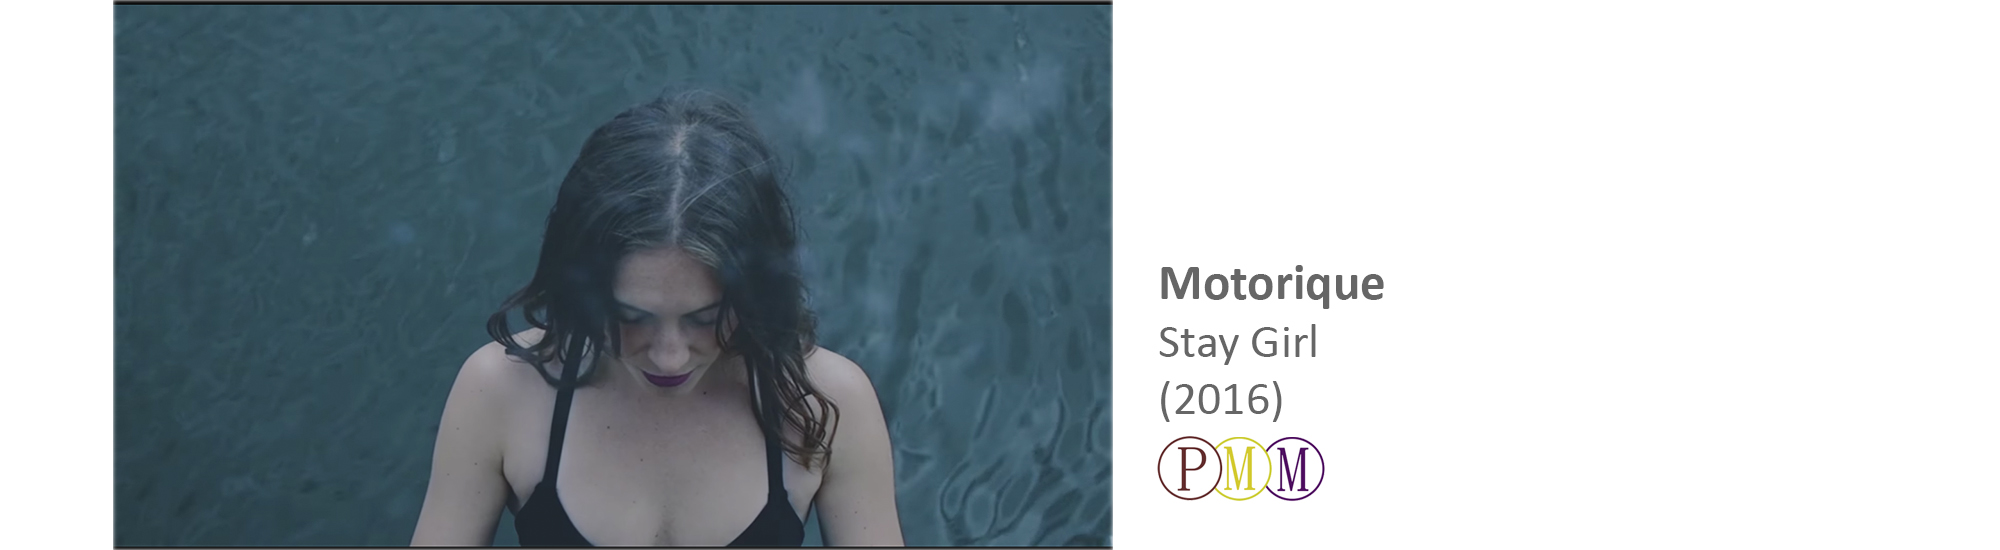 Motorique stay girl music video